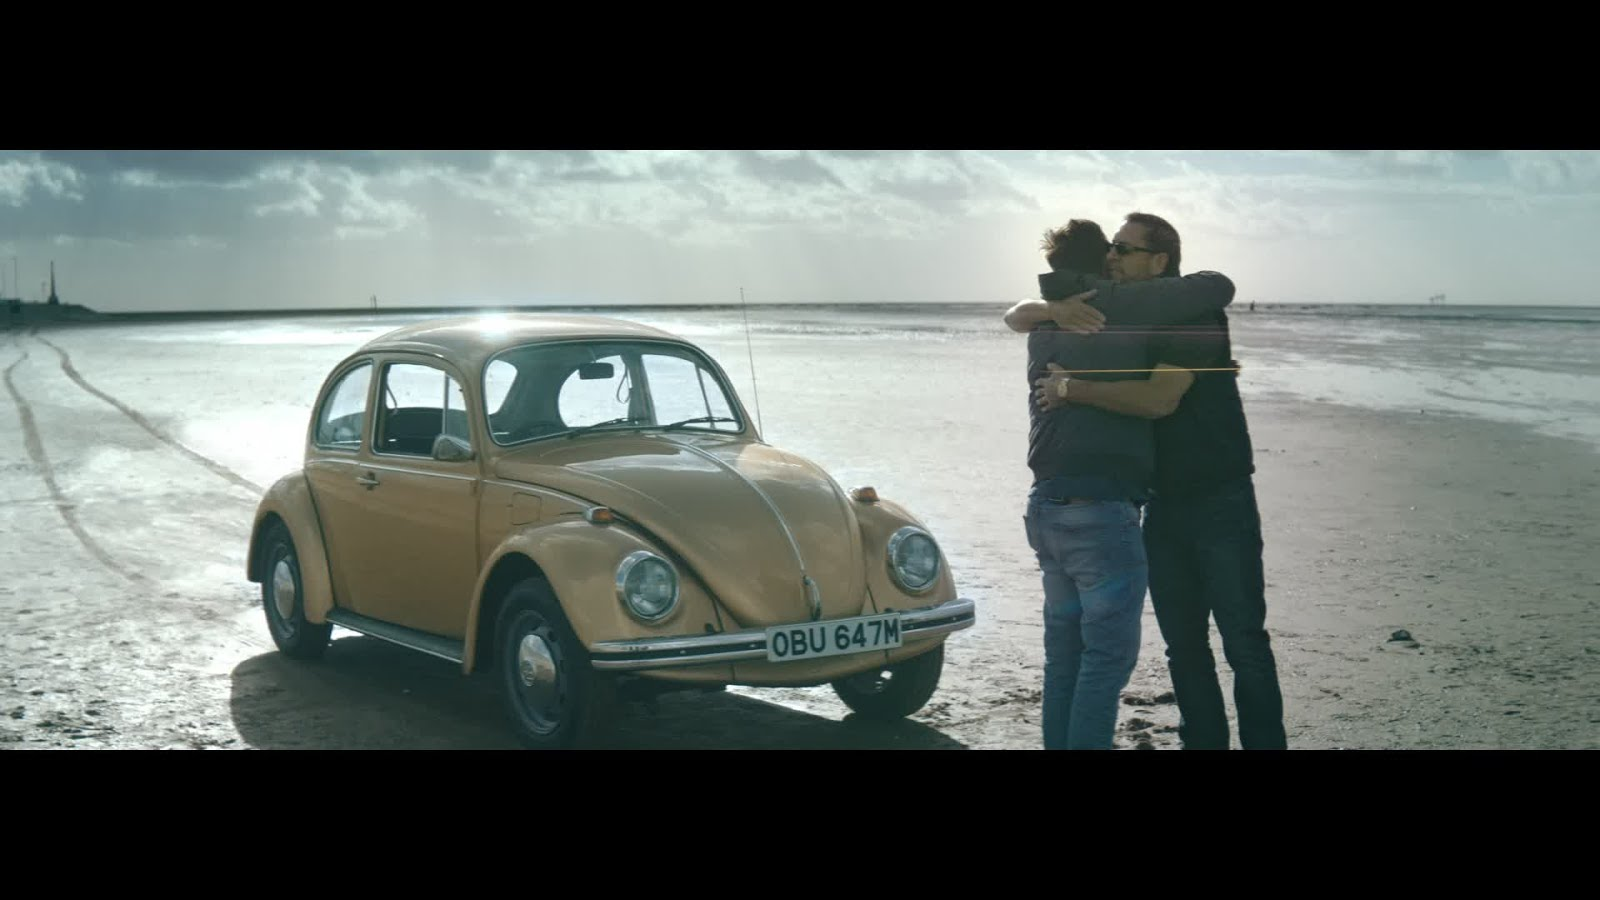 Envy advertising and adam eveddb rekindle childhood memories for volkswagen adstasher